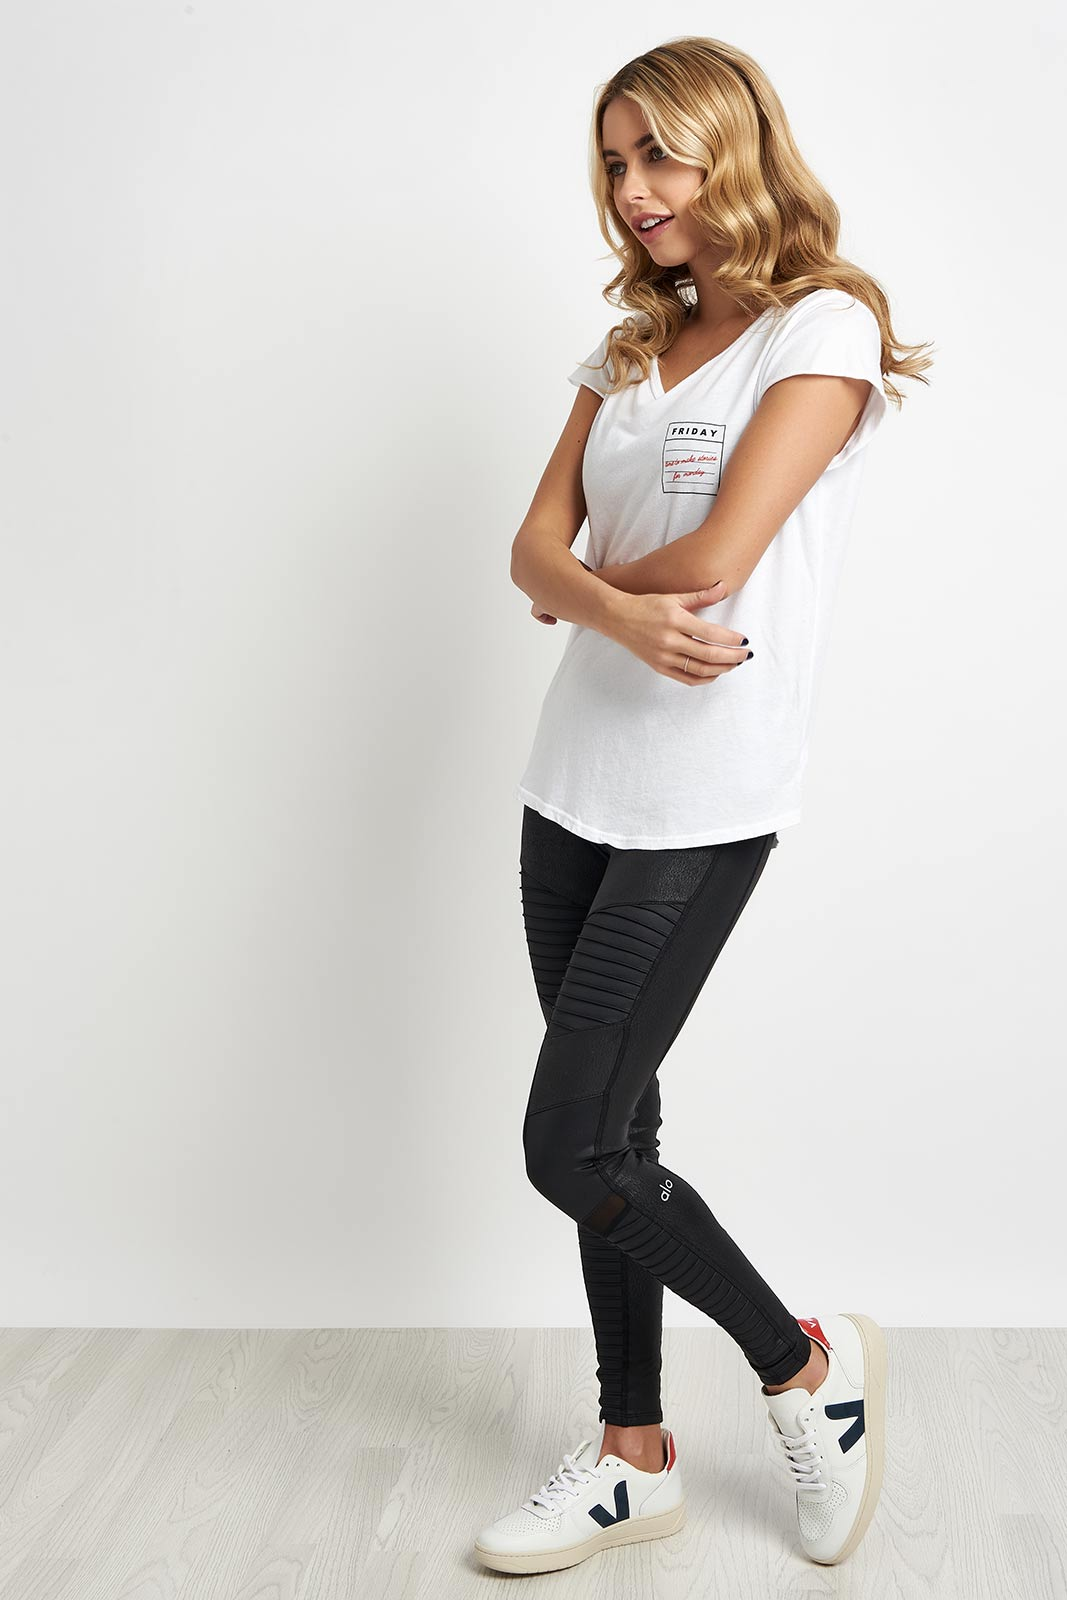 good hYOUman Rounded Relaxed Tee - The Helen image 4 - The Sports Edit